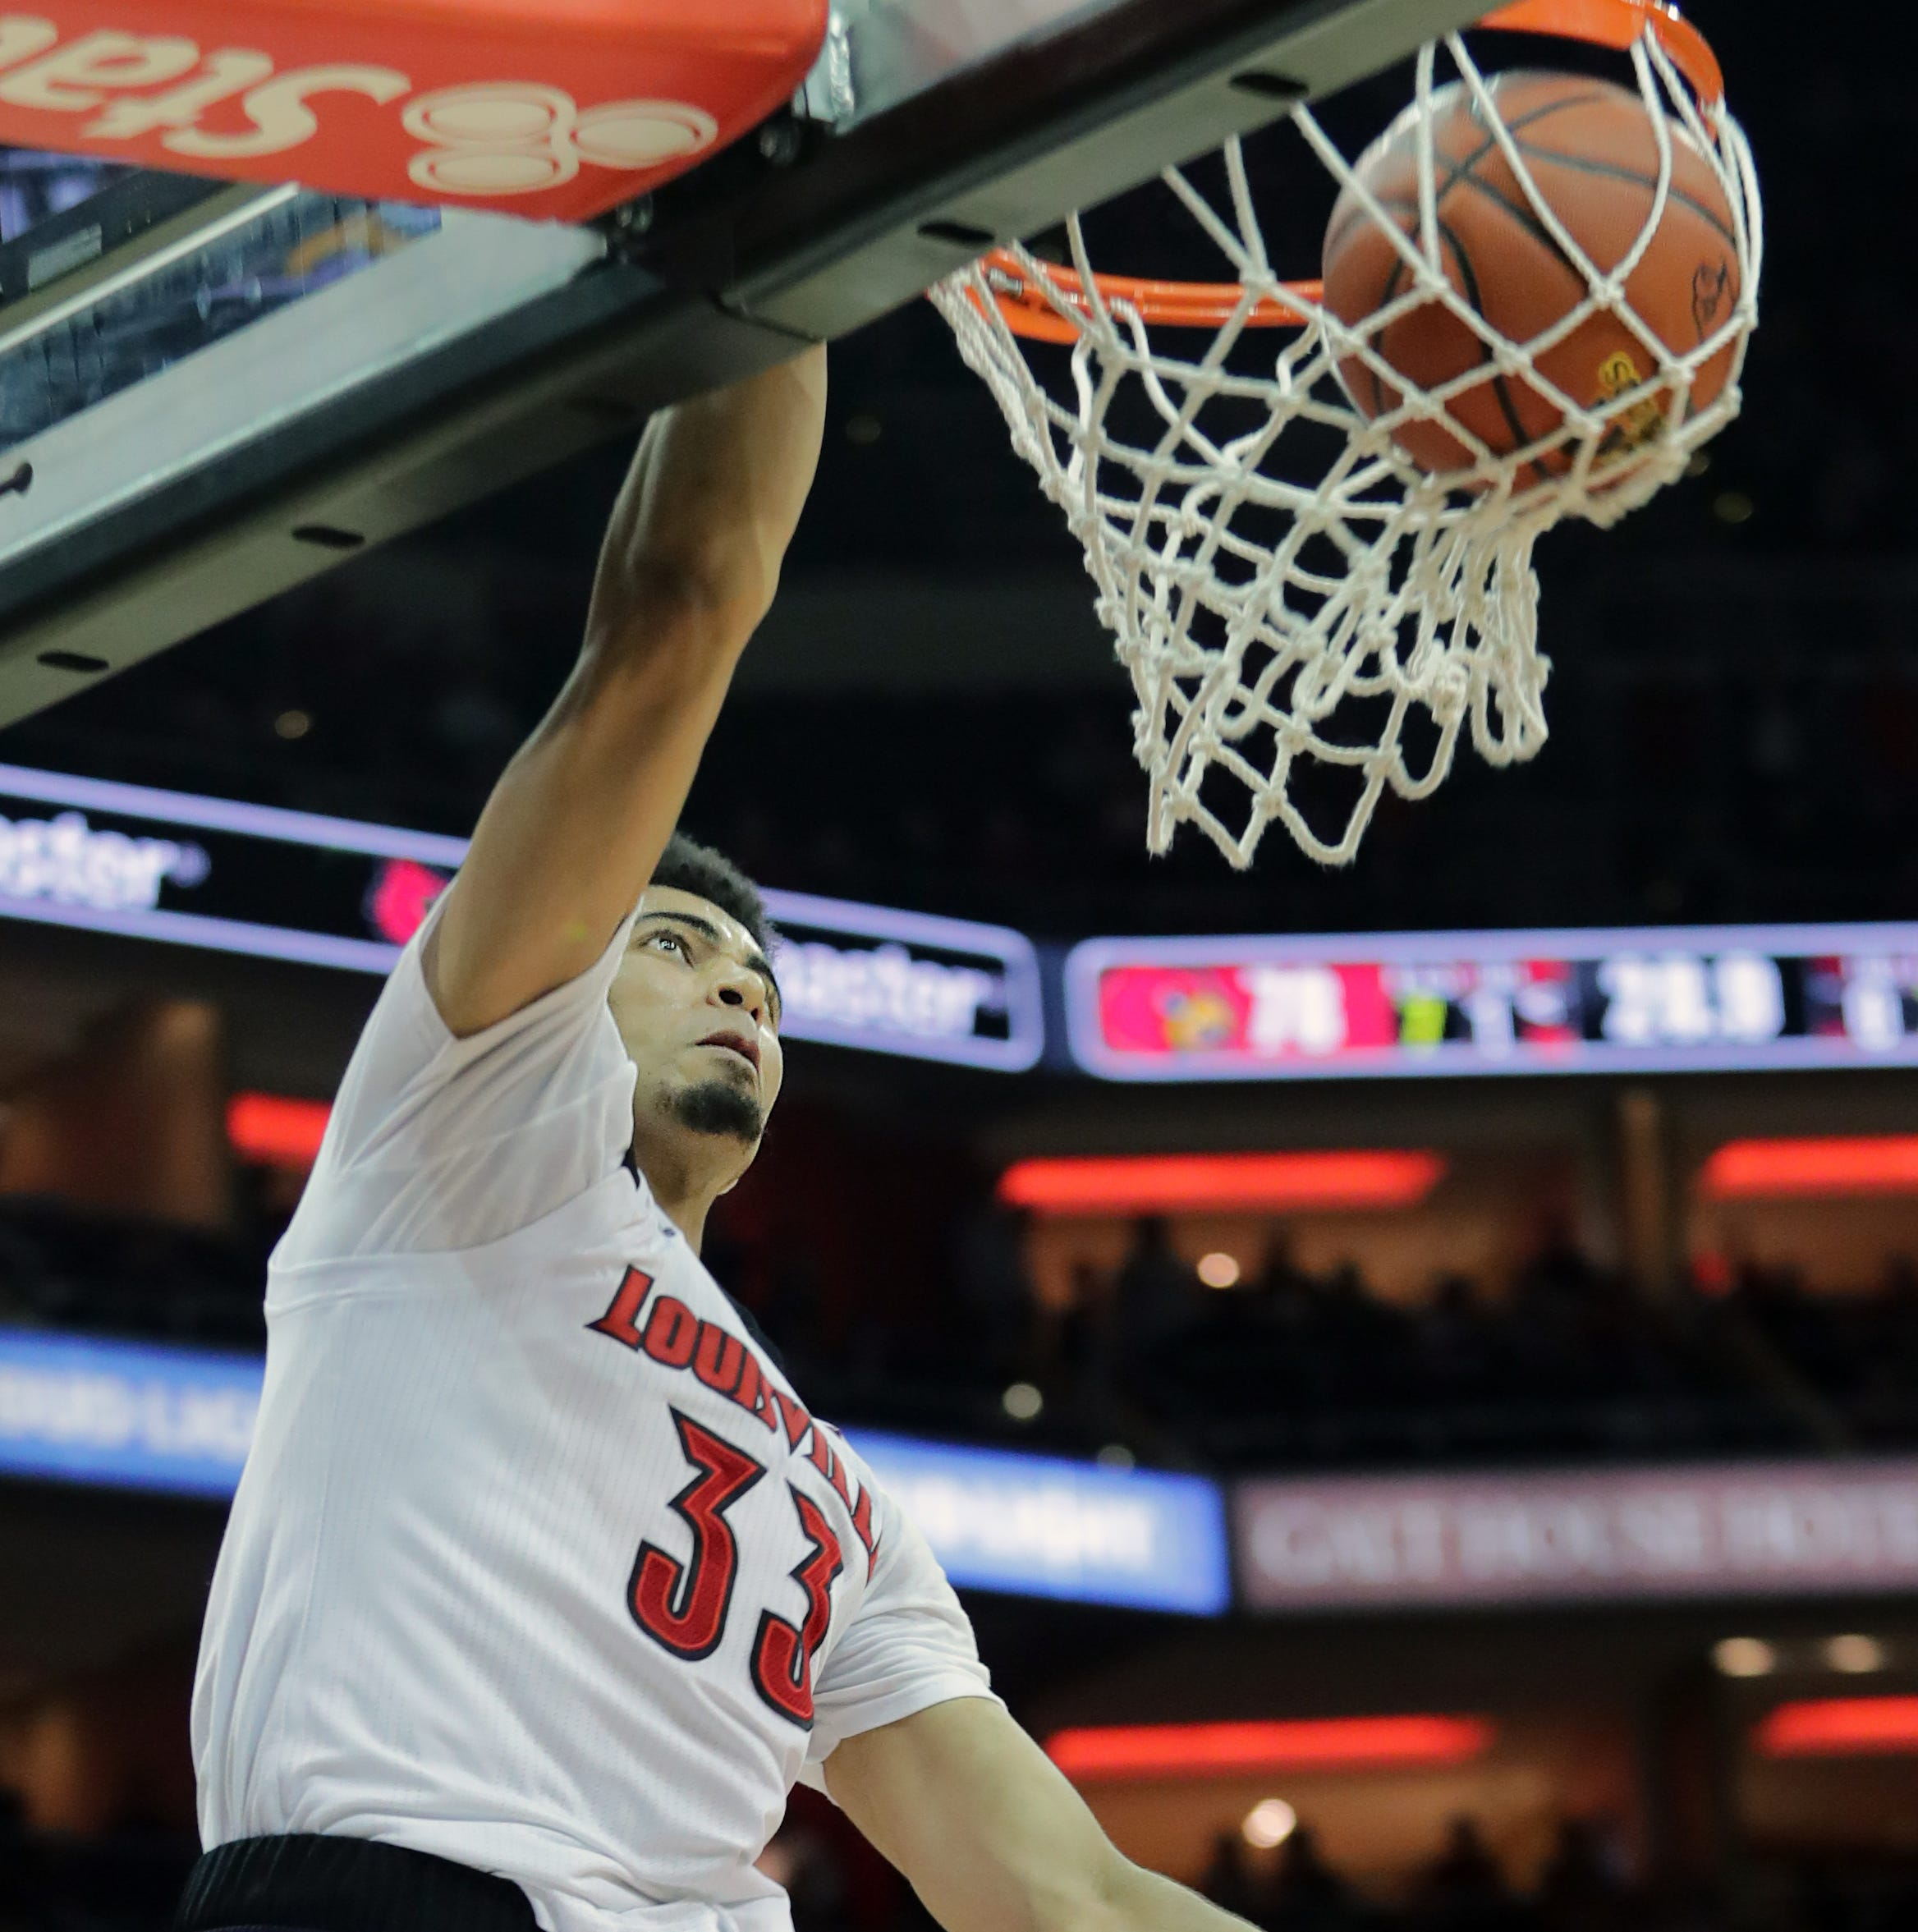 What would it mean for Louisville if Jordan Nwora stays in the NBA Draft?